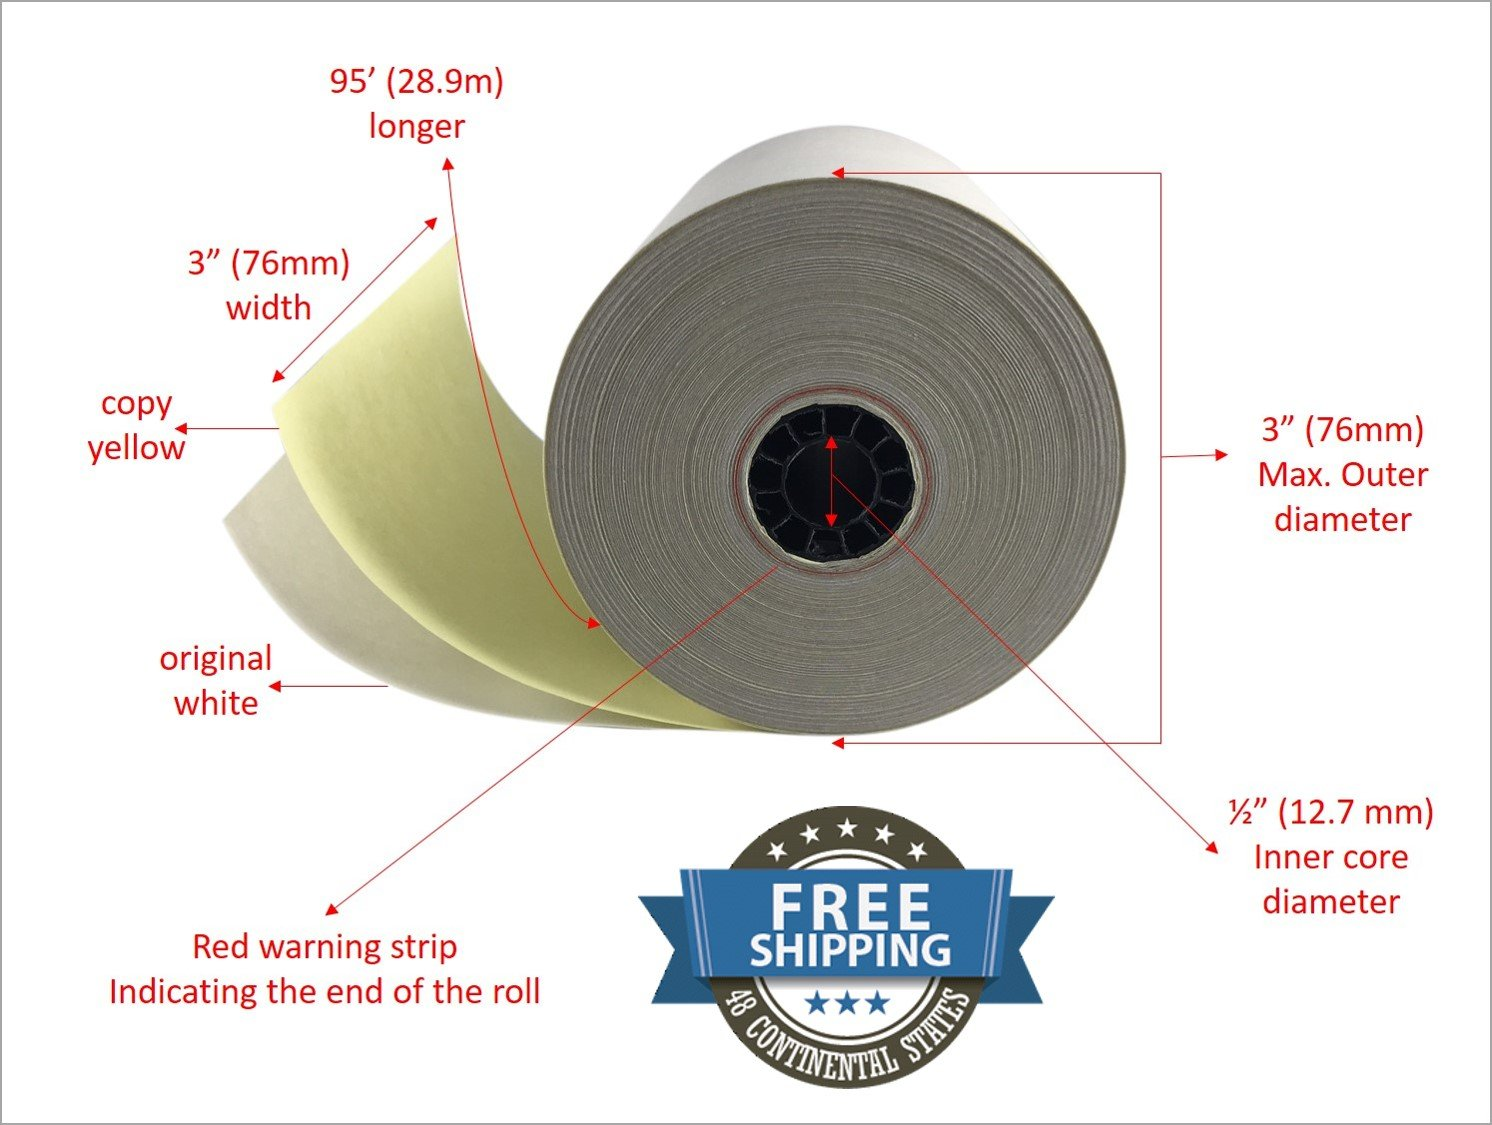 2 ply Carbonless Copy Paper Roll White/Canary 3 x 95 (24 Rolls)